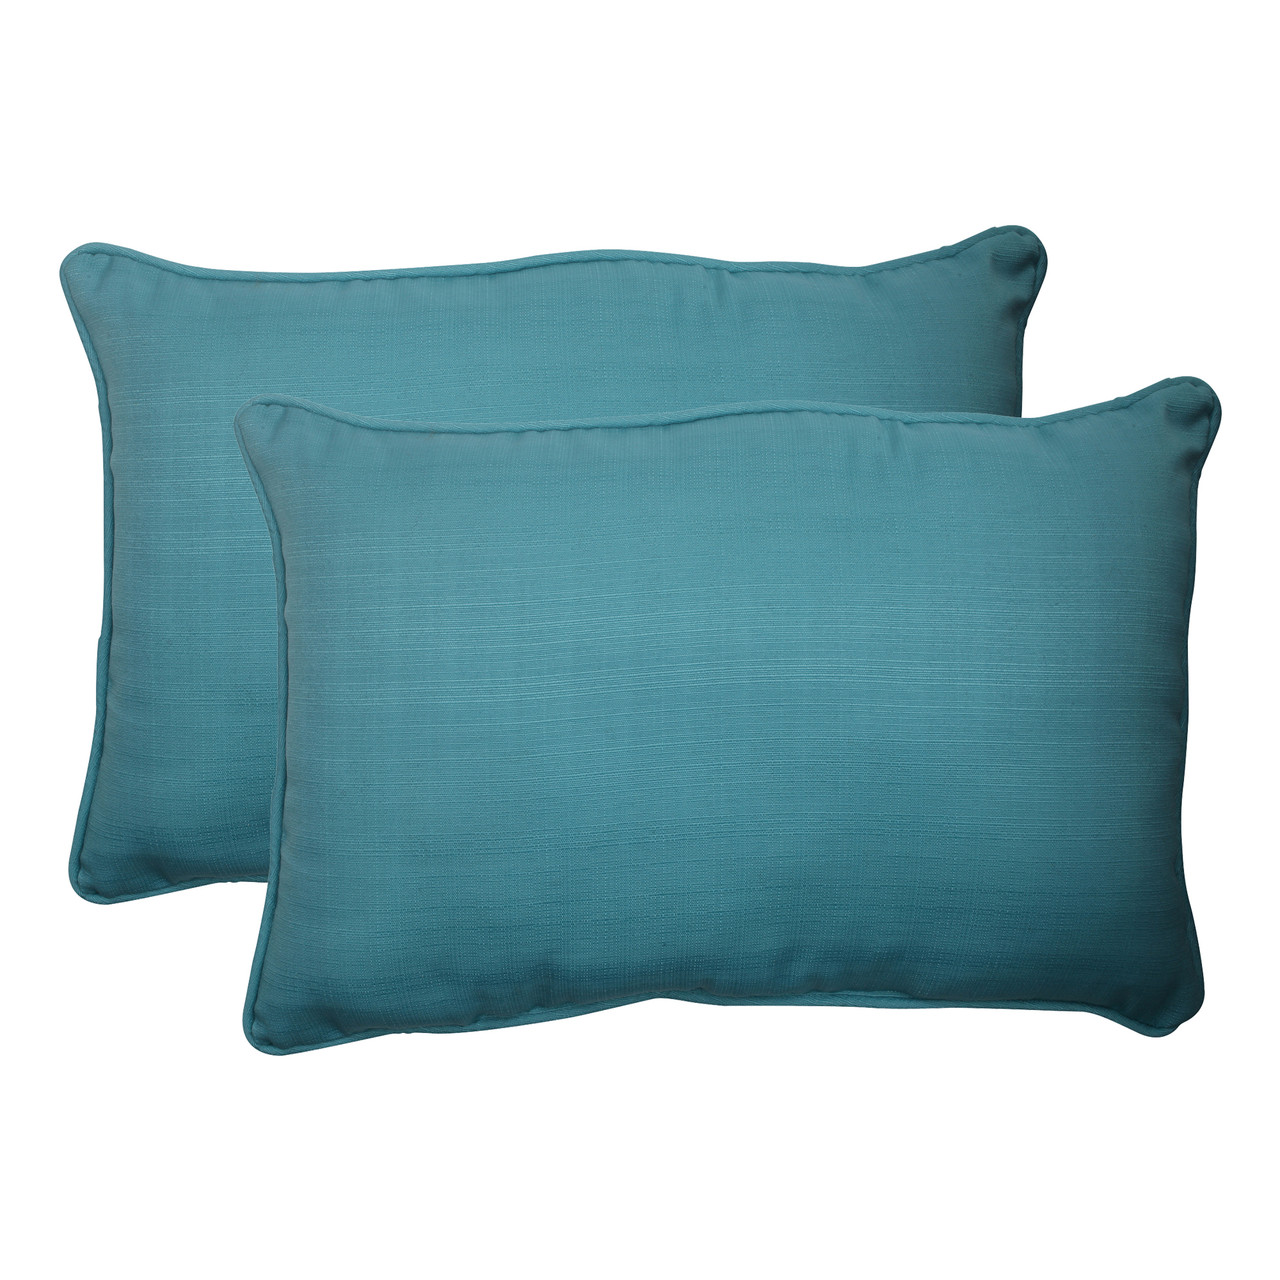 Turquoise Pillow Perfect Outdoor Forsyth Corded Oversized Rectangular Throw Pillow Set of 2 507019